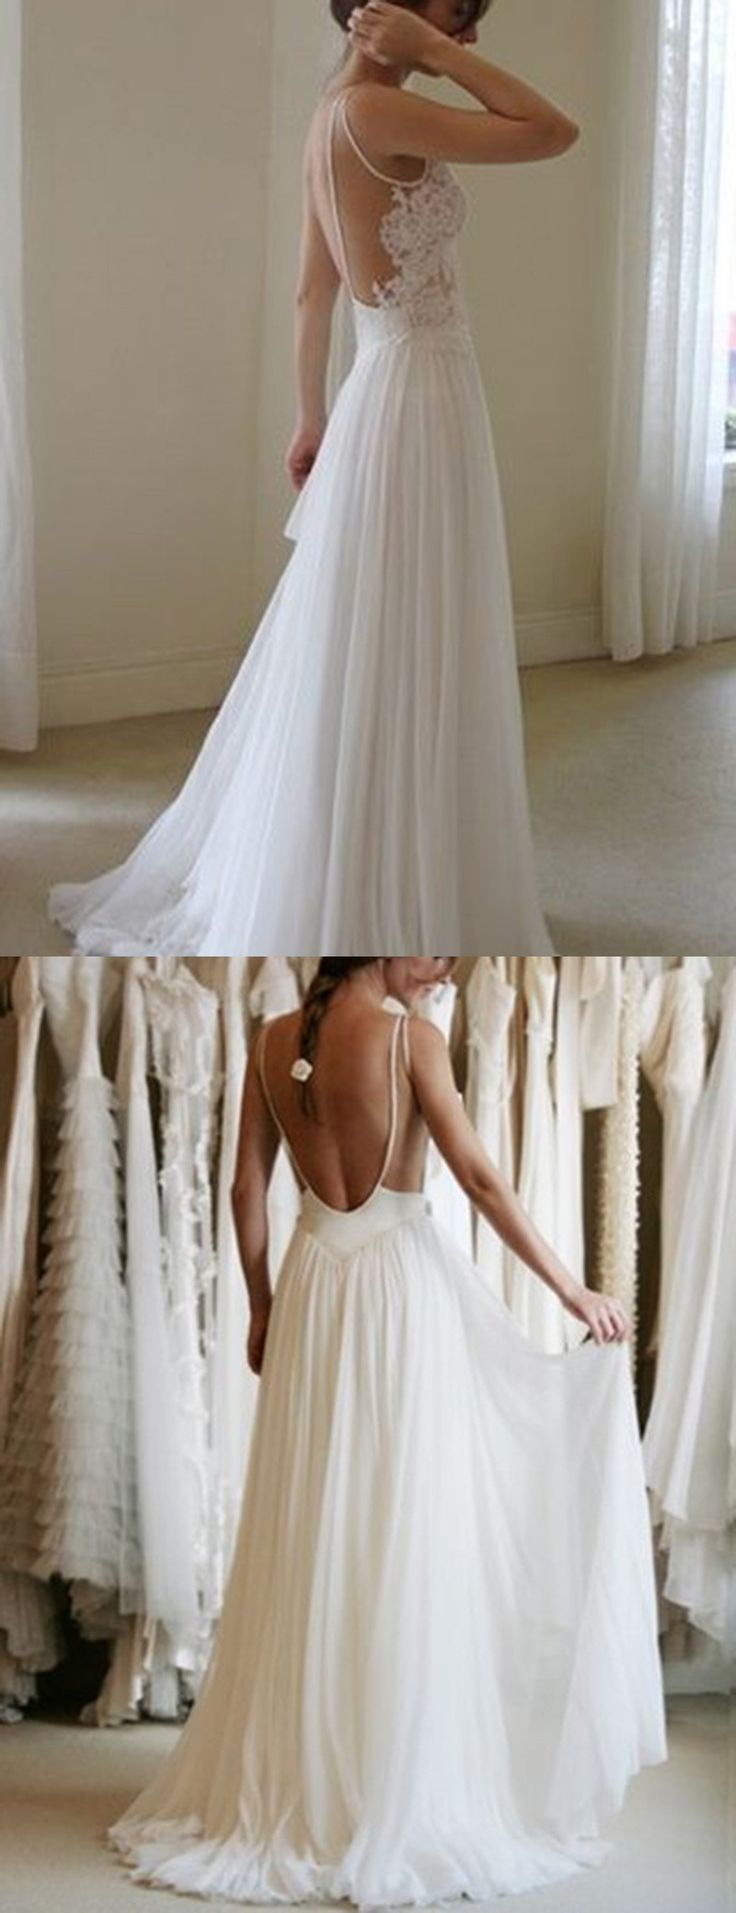 wedding dresses, wedding ideas, open back wedding dress, backless wedding dresses, long chiffon wedding dresses TOTALLY STUNNING!!